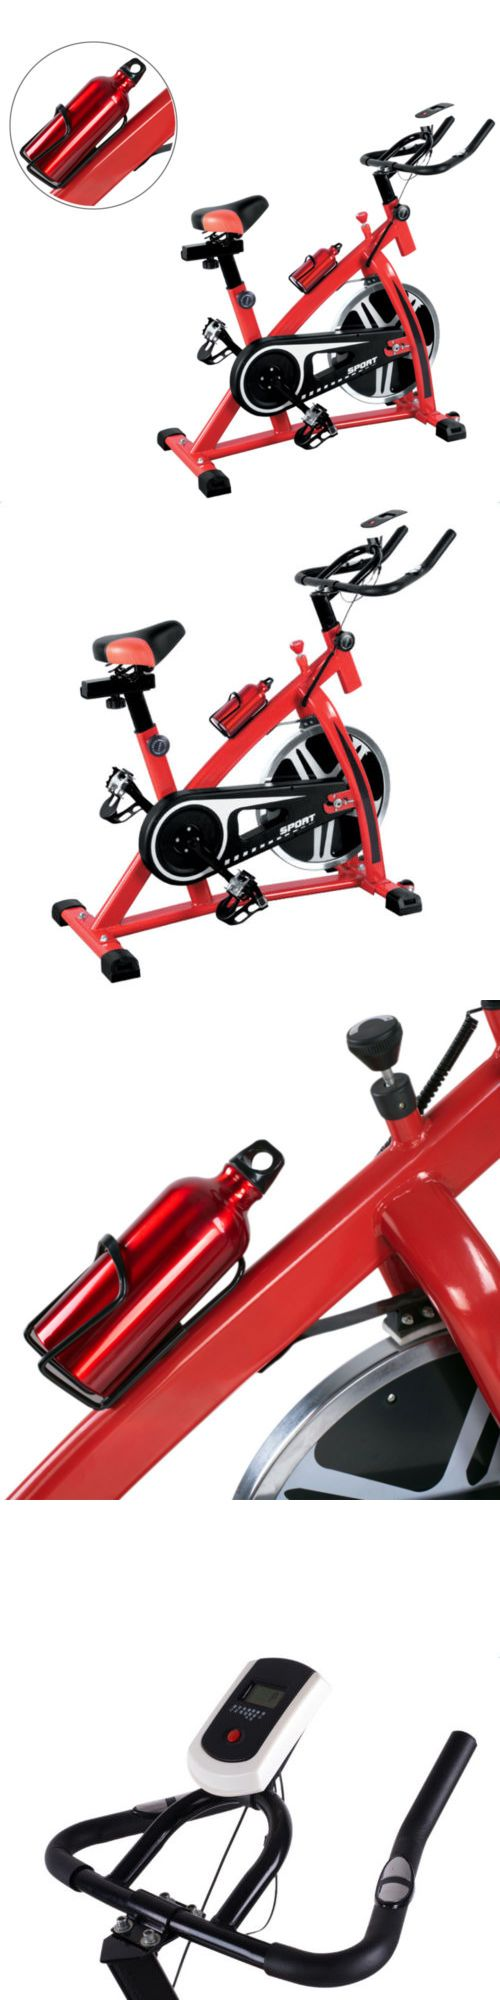 Resistance Trainers 79759: New Exercise Bike Stationary Bicycle Cycling Fitness Health Adjustable Home Gym -> BUY IT NOW ONLY: $153.49 on eBay!